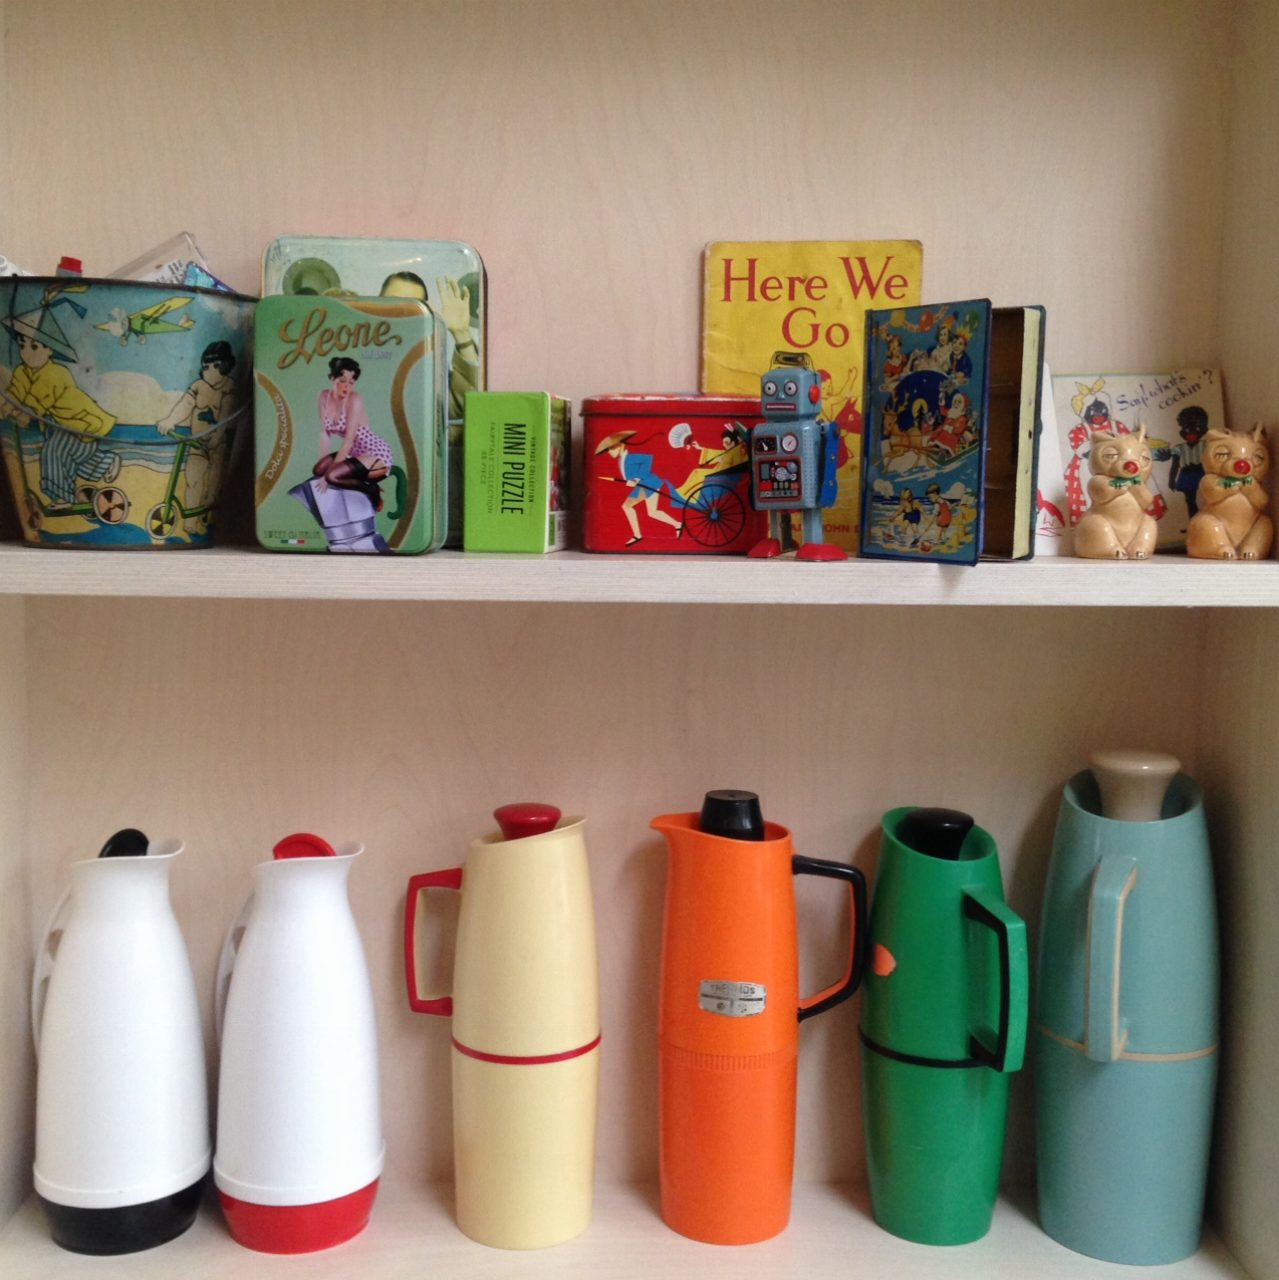 Some of Amy's viintage wares. Taken on our team recce to Hengrave.